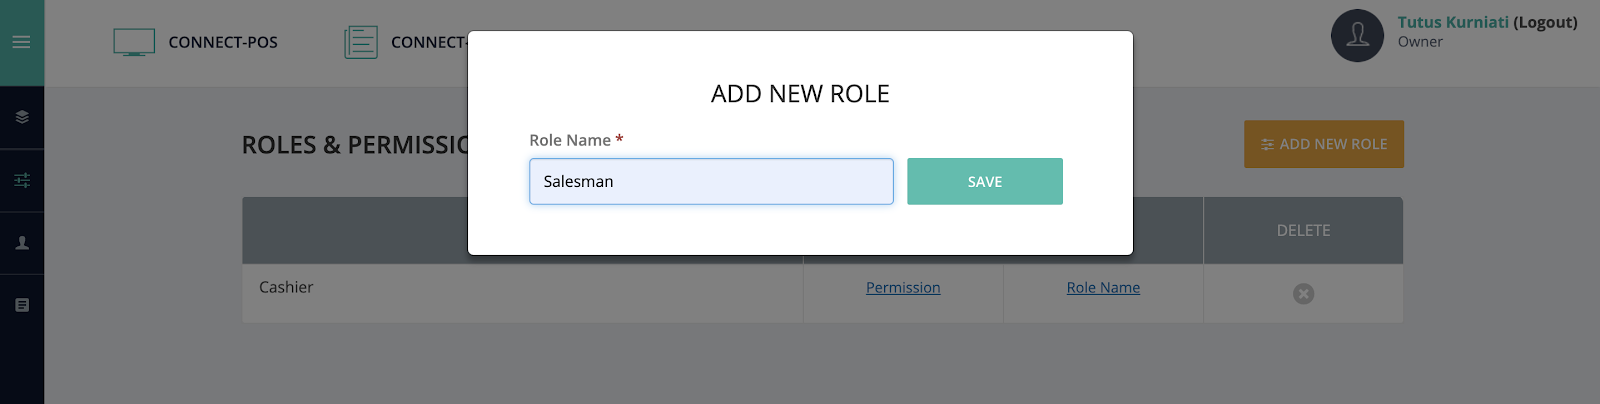 Create unlimited staff roles in ConnectPOS